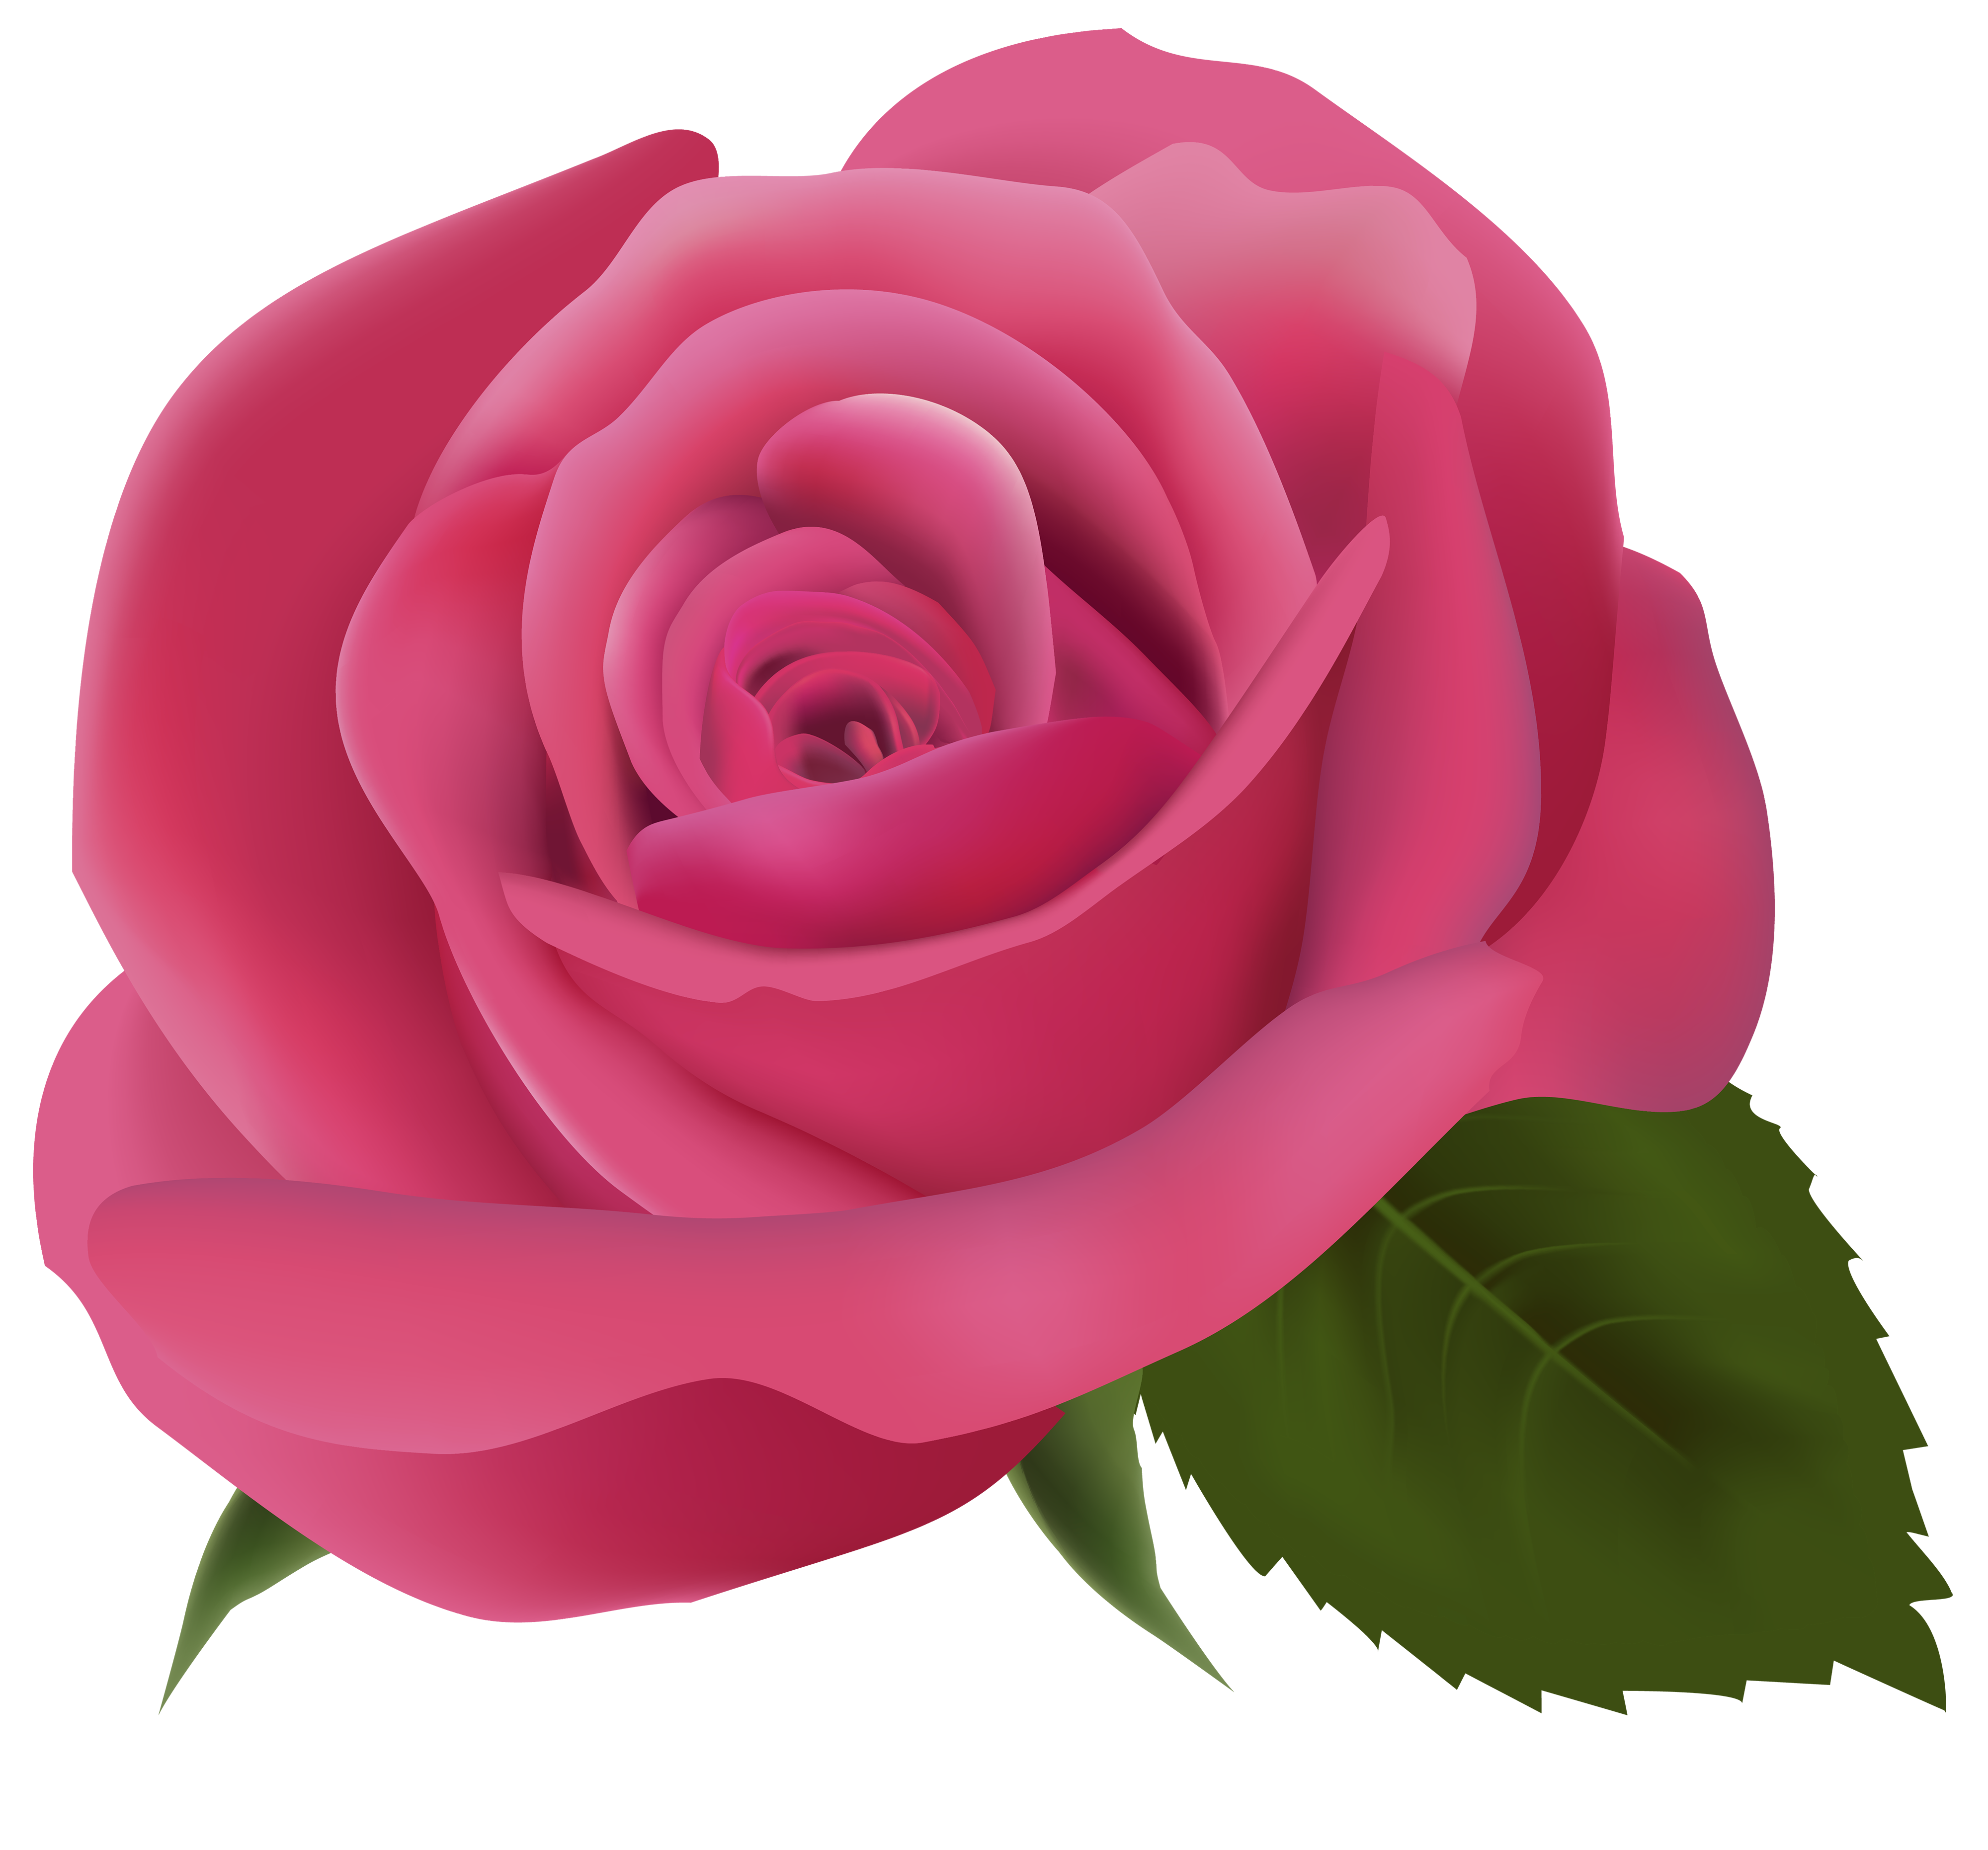 Pink Rose PNG Clipart Image.